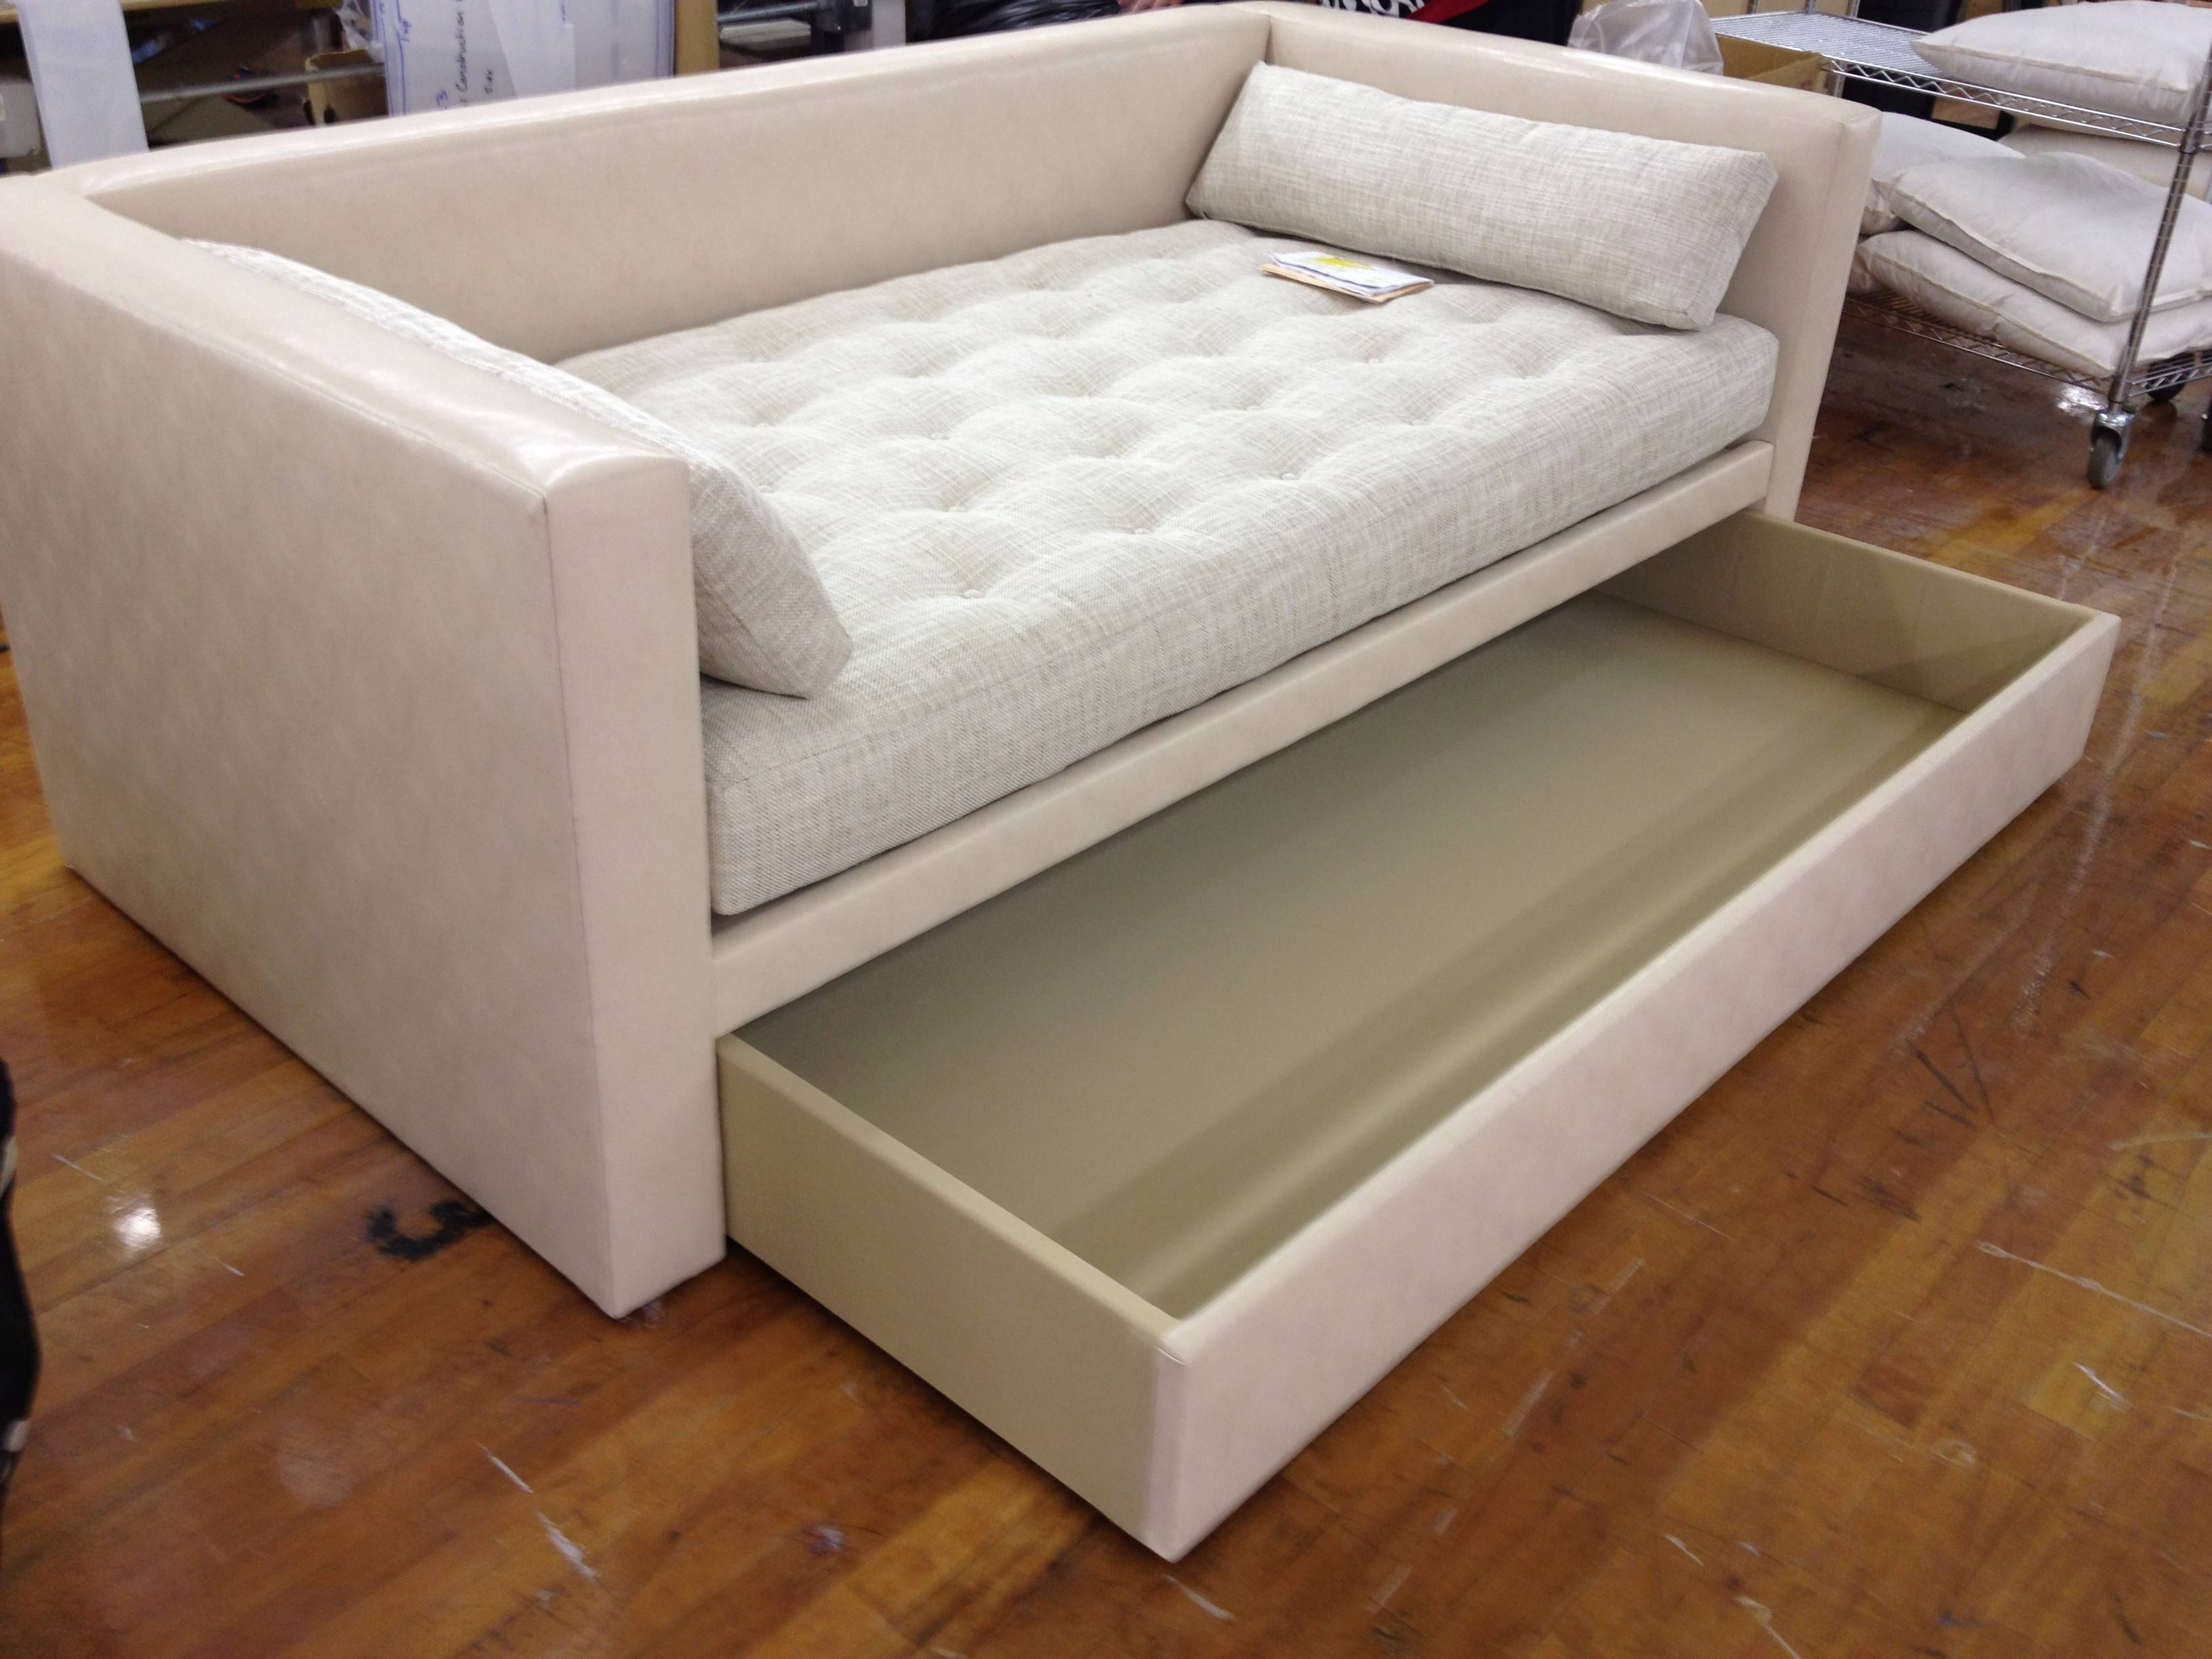 Sofas Center : 37 Unbelievable Sofa Daybed With Trundle Images For Sofas Daybed With Trundle (View 11 of 15)